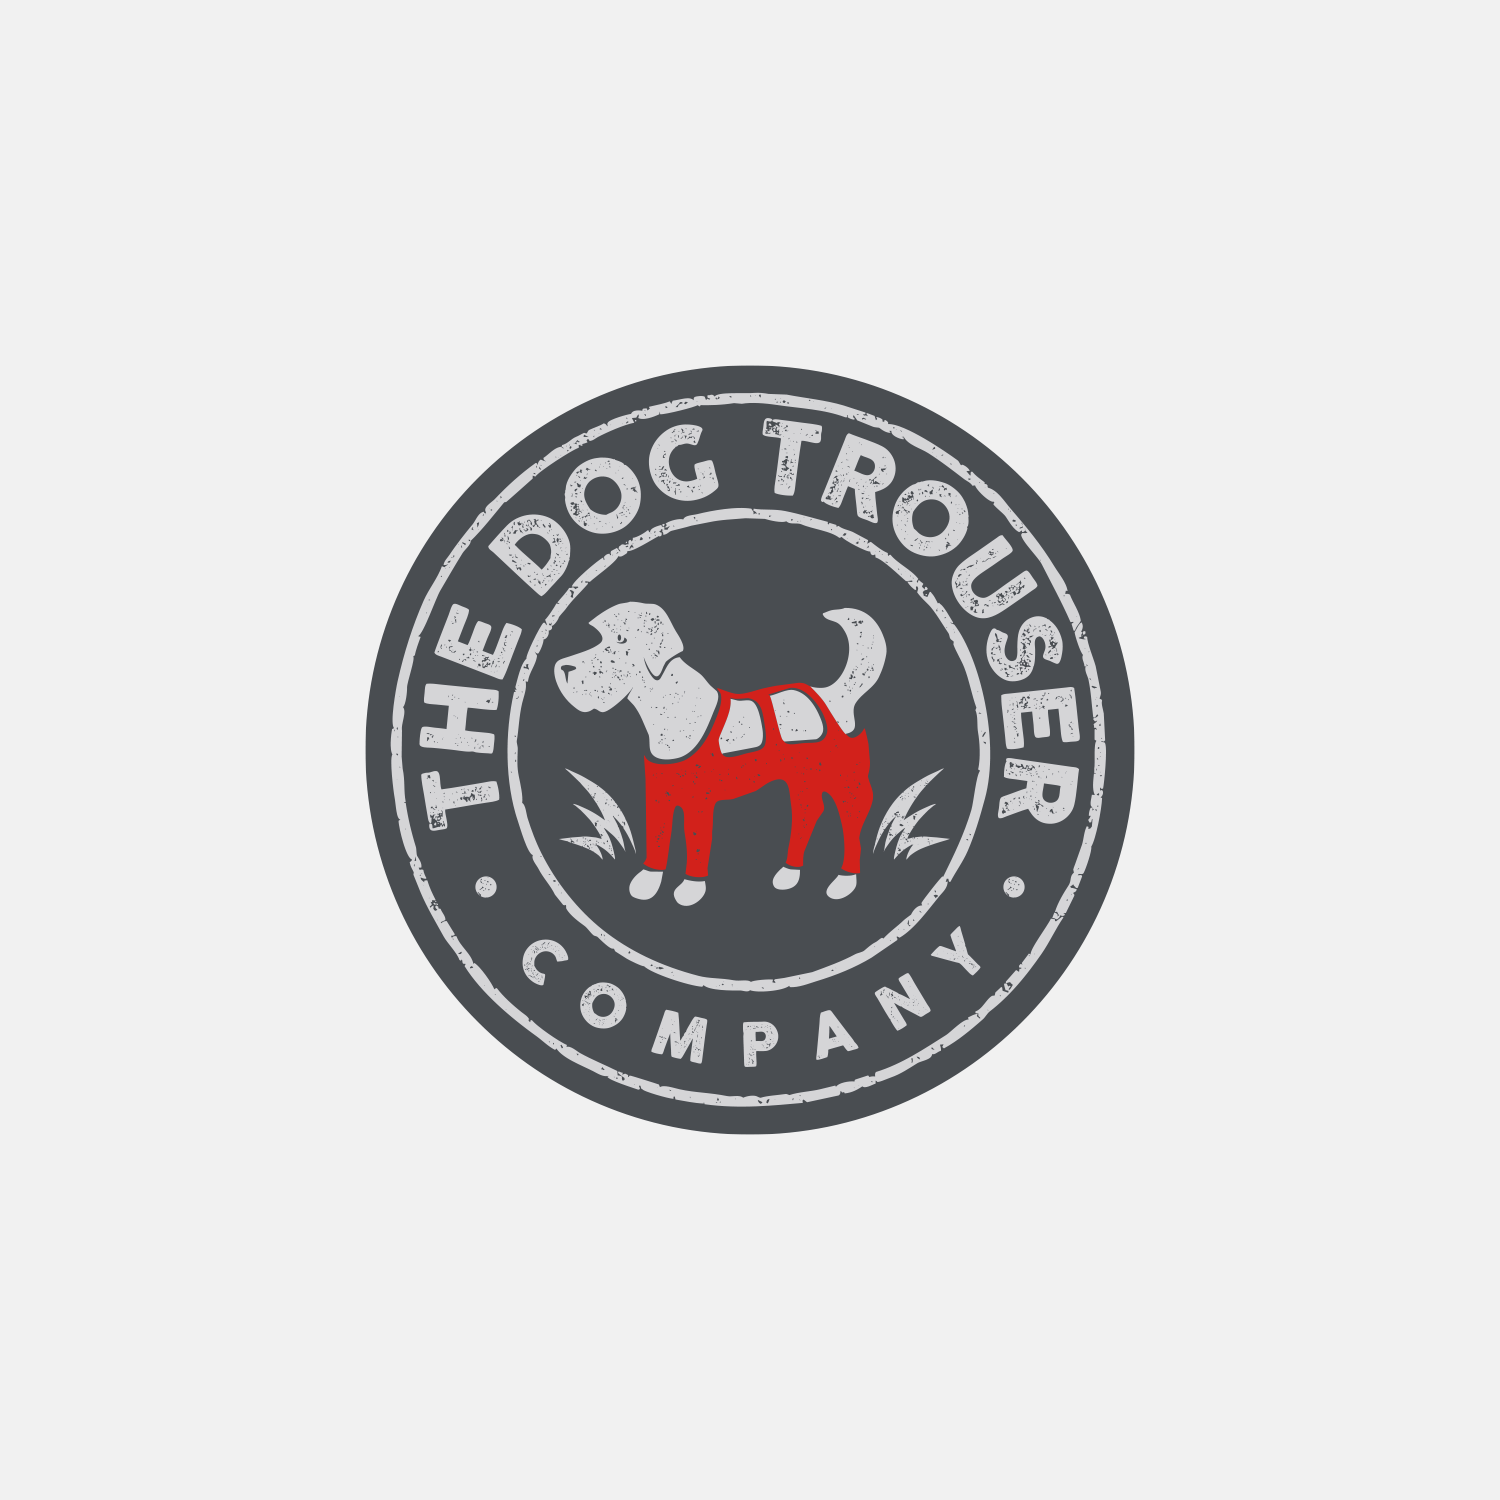 The Dog Trouser Company